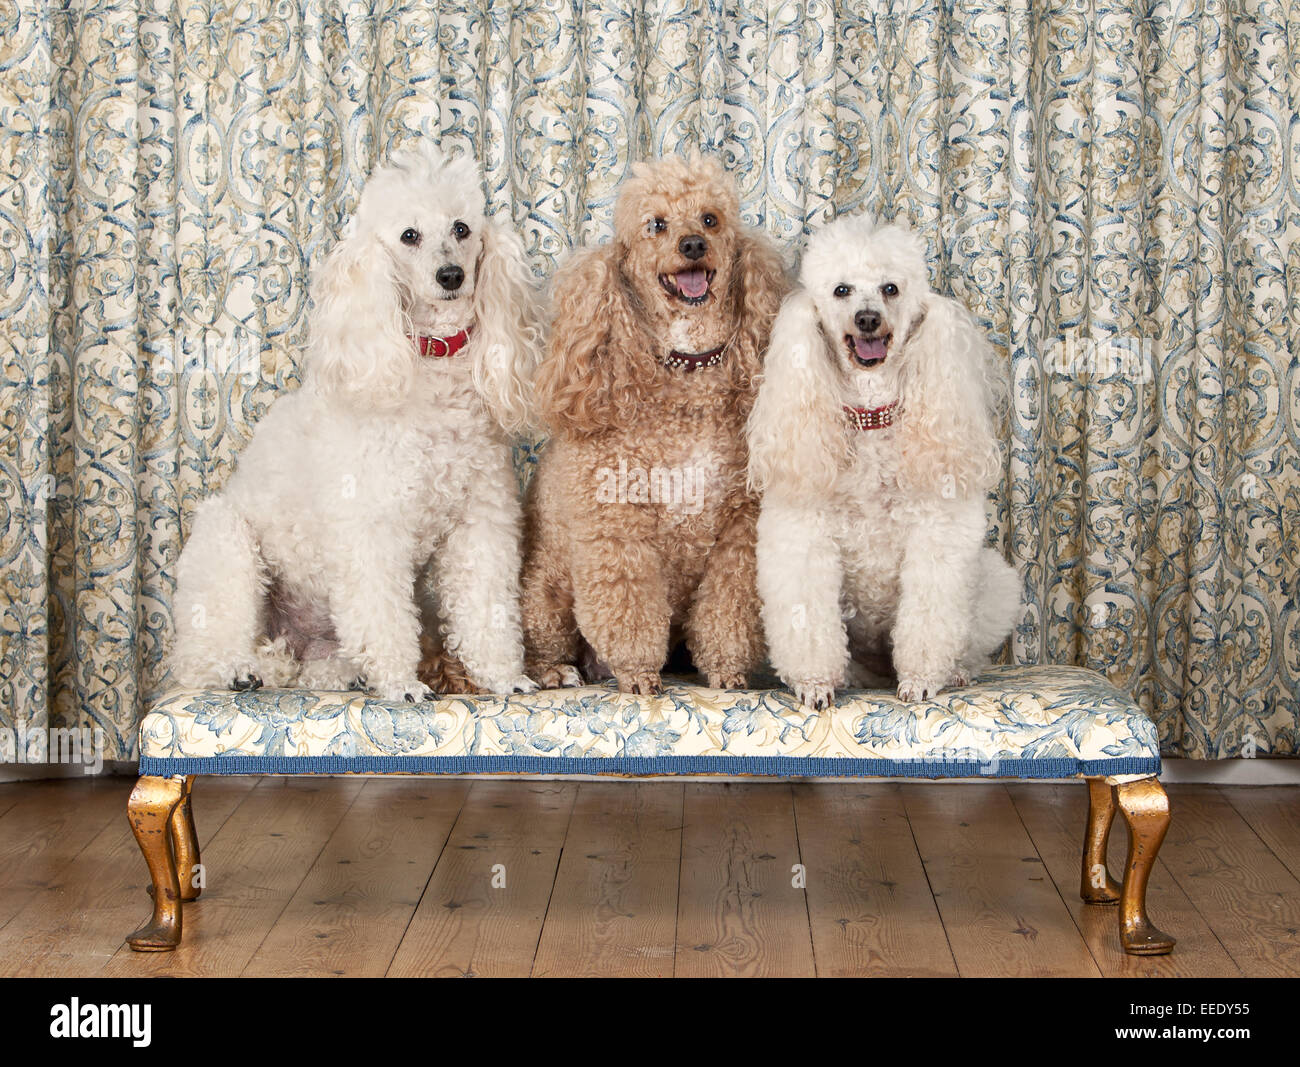 Shot of Three Miniature Poodles on Bench - Stock Image